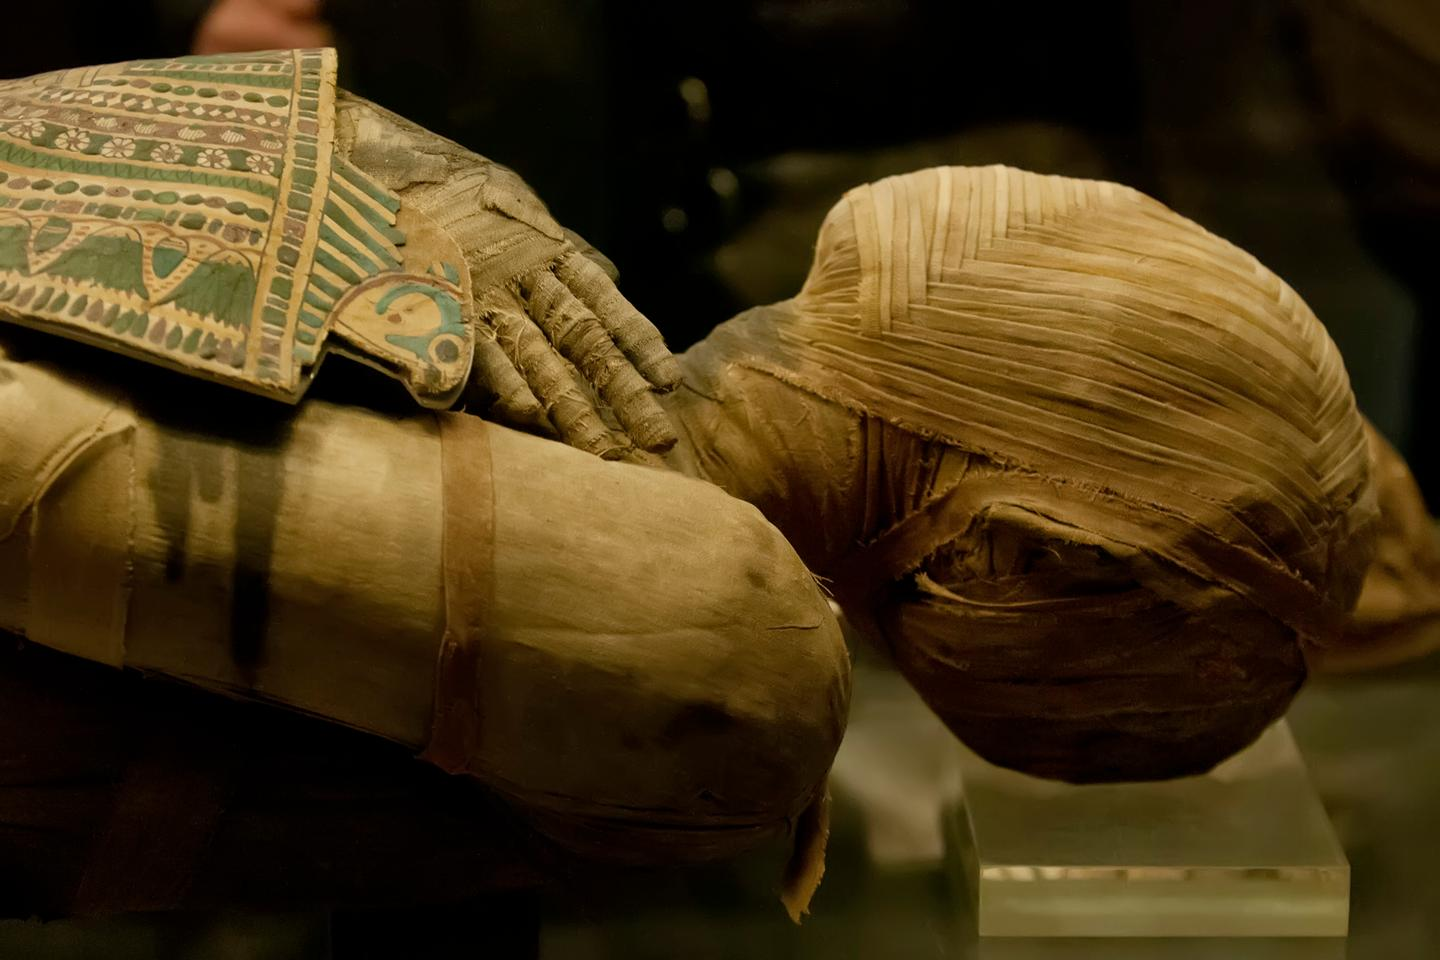 A recently discovered text written around 1450 BCE contains previously unknown details about Egyptian mummification process